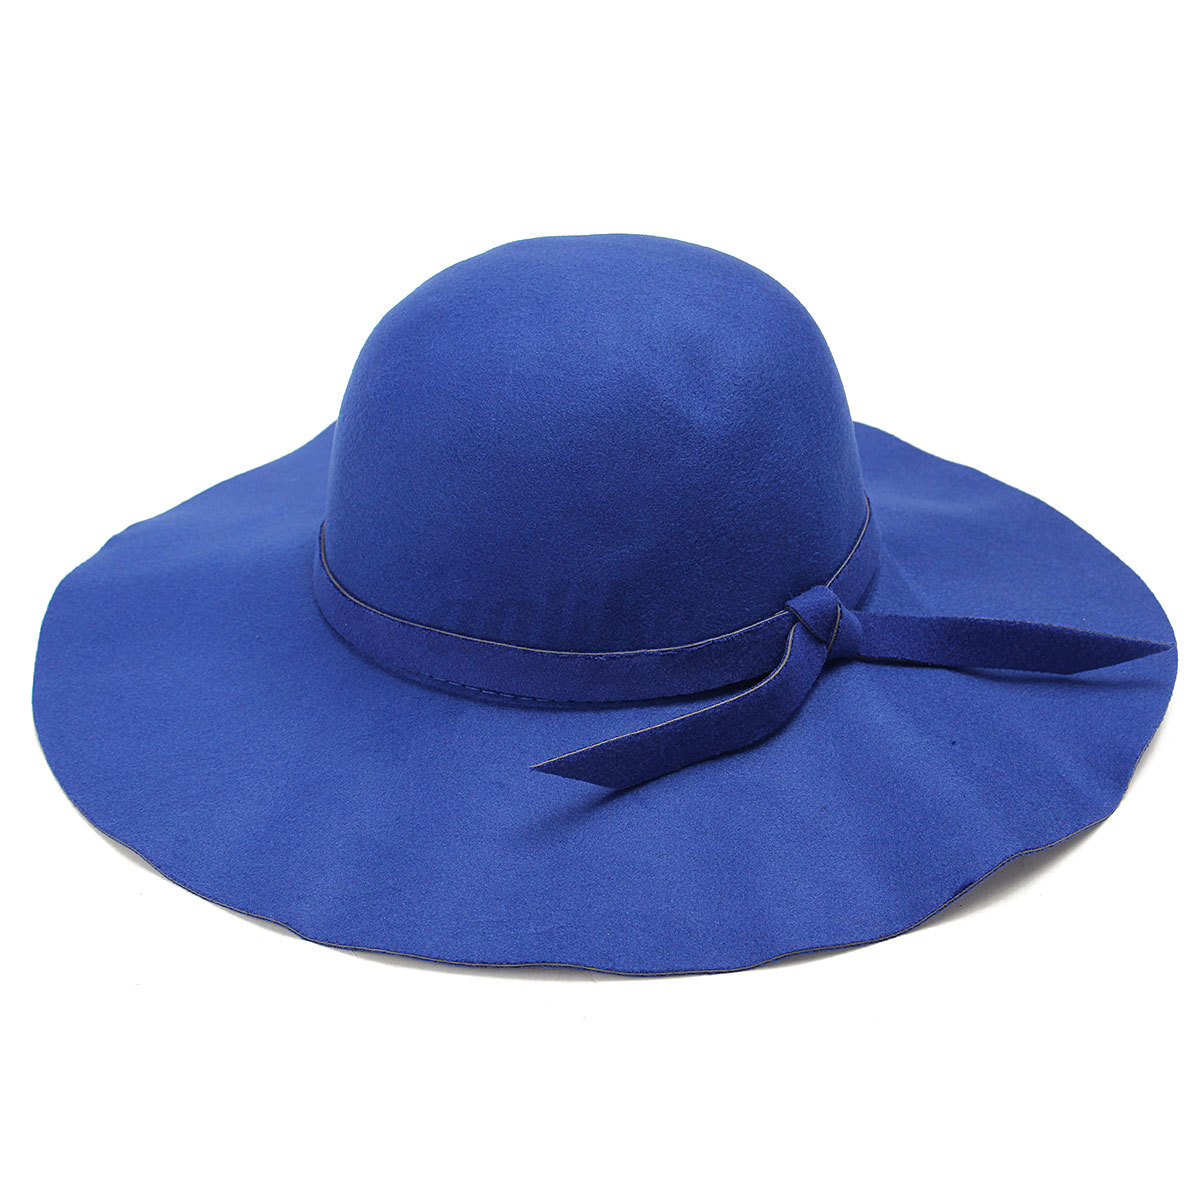 Wide Brim Hats for Every Summer Need In addition to offering the best in sun protection, women's wide brim hats also offer tons of styling options. You'll find hats that encompass everything from casual and bohemian to classic and refined.